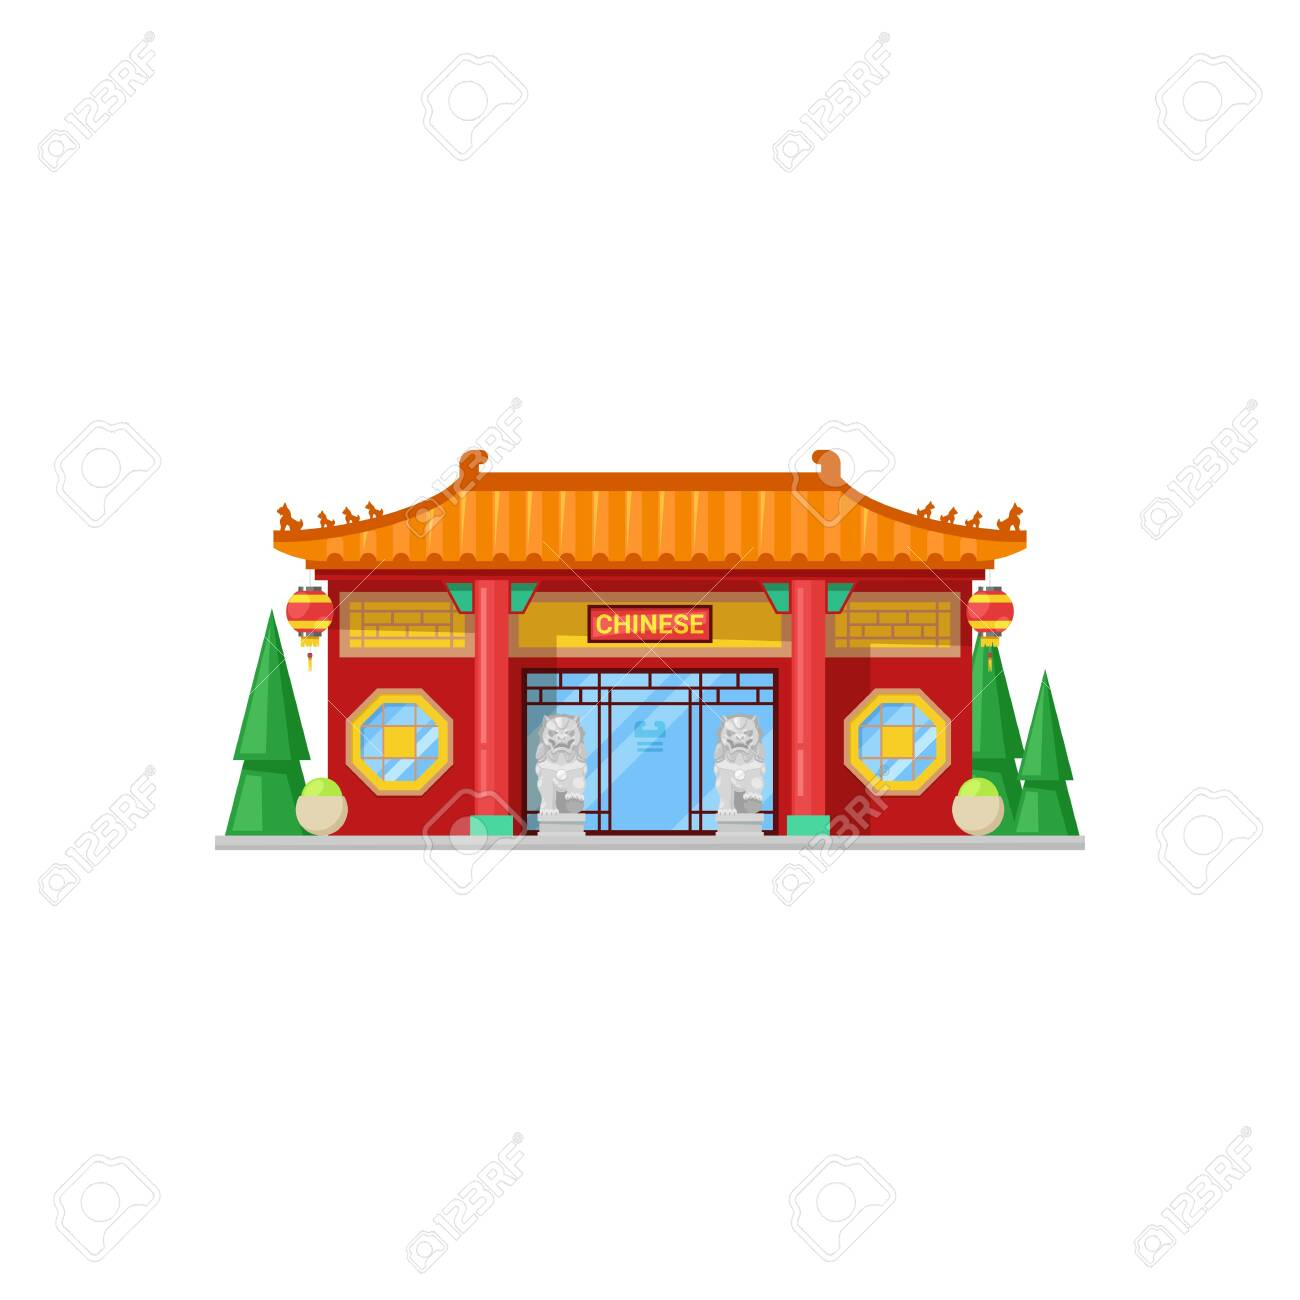 Chinese Restaurant Isolated Exterior Design Vector Cafe Building Royalty Free Cliparts Vectors And Stock Illustration Image 136708272